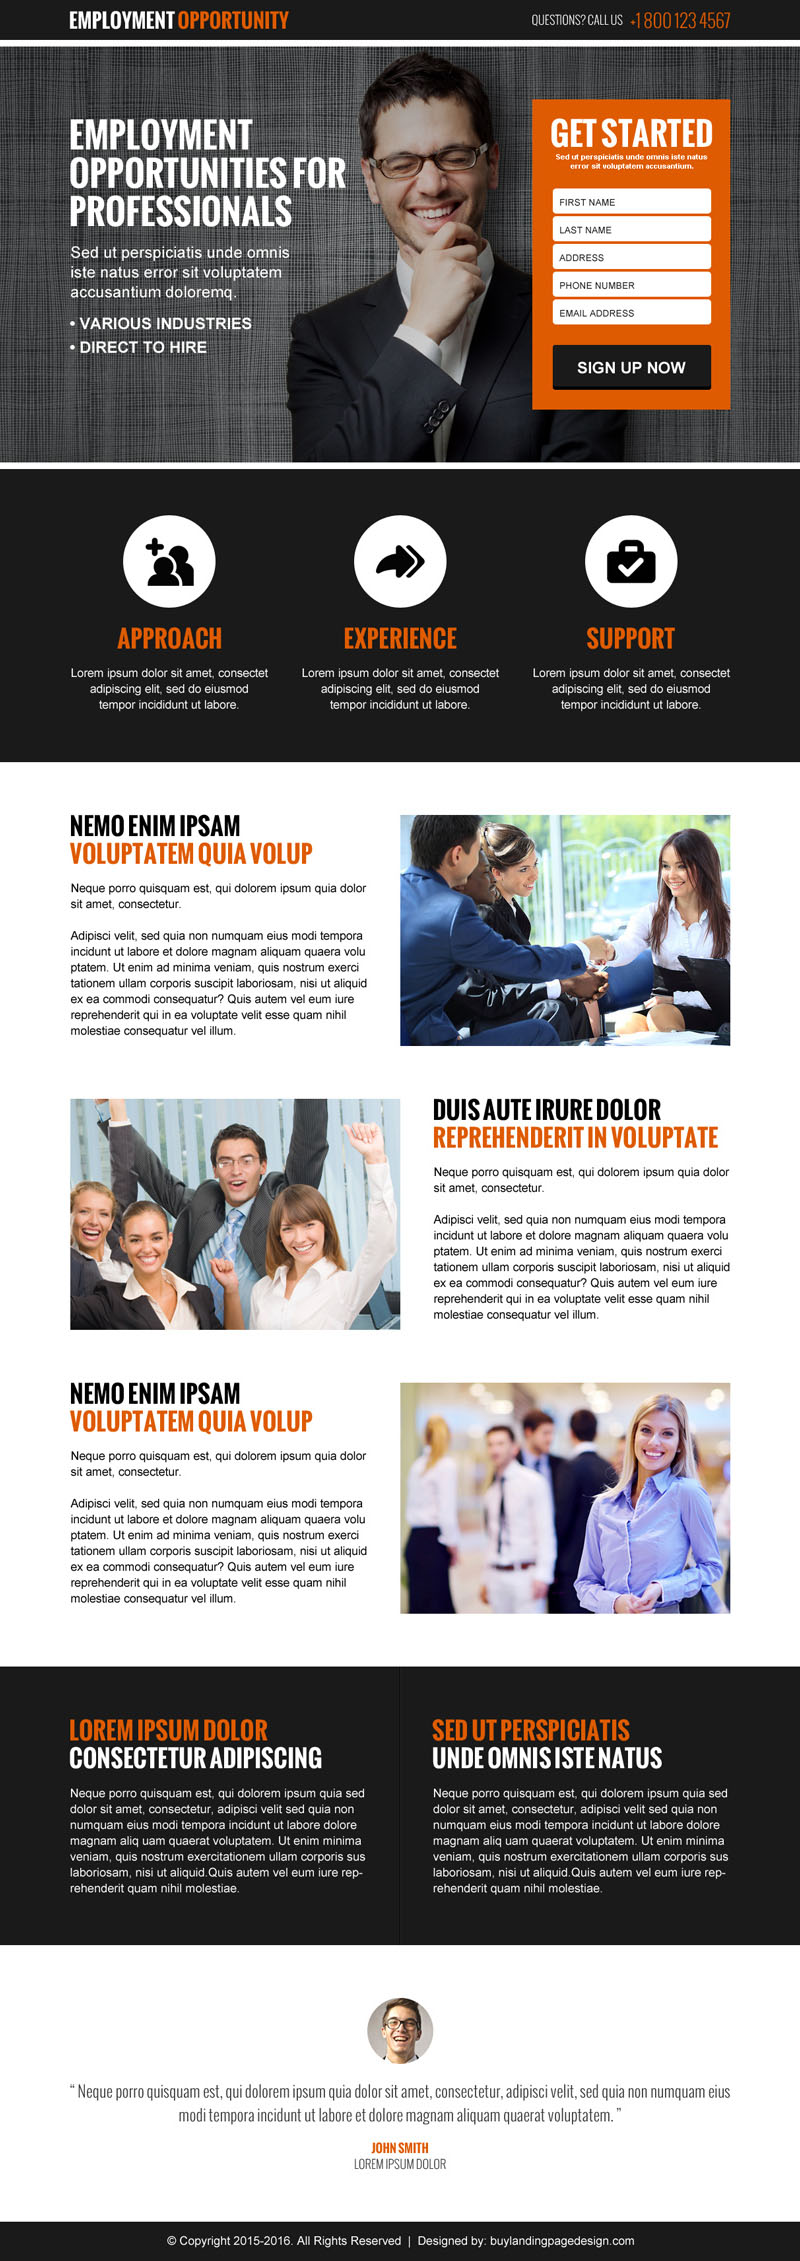 employment-opportunity-lead-generation-responsive-landing-page-design-template-001